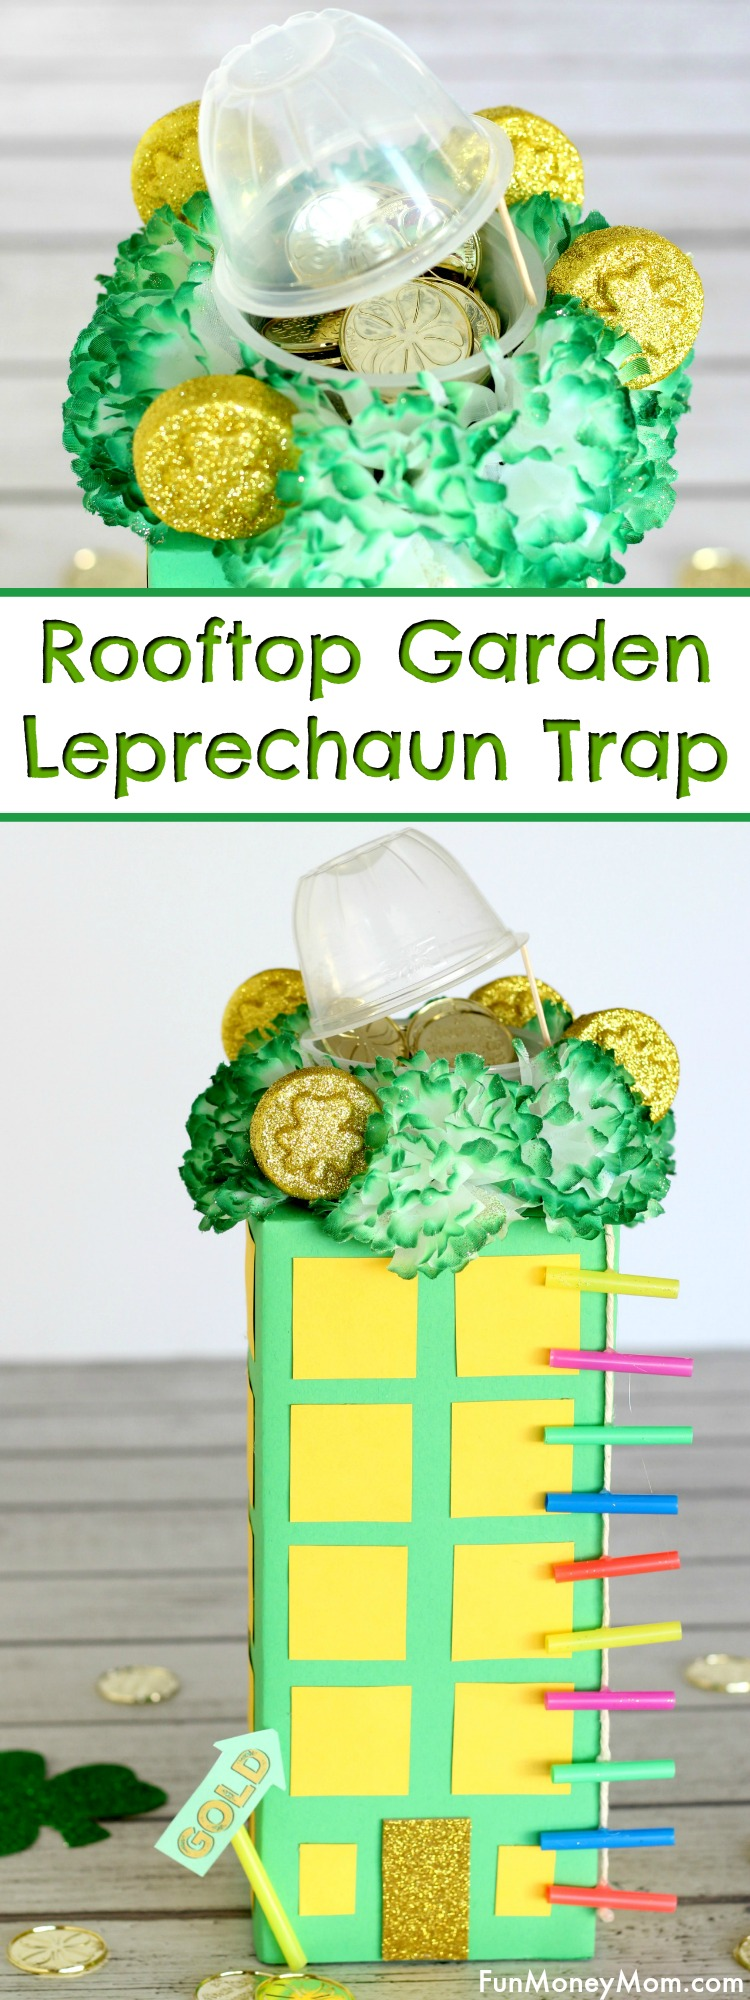 Leprechaun Trap - Trap a leprechaun in this cute rooftop garden. It's a fun St. Patrick's Day craft for both the kids and the grown ups!